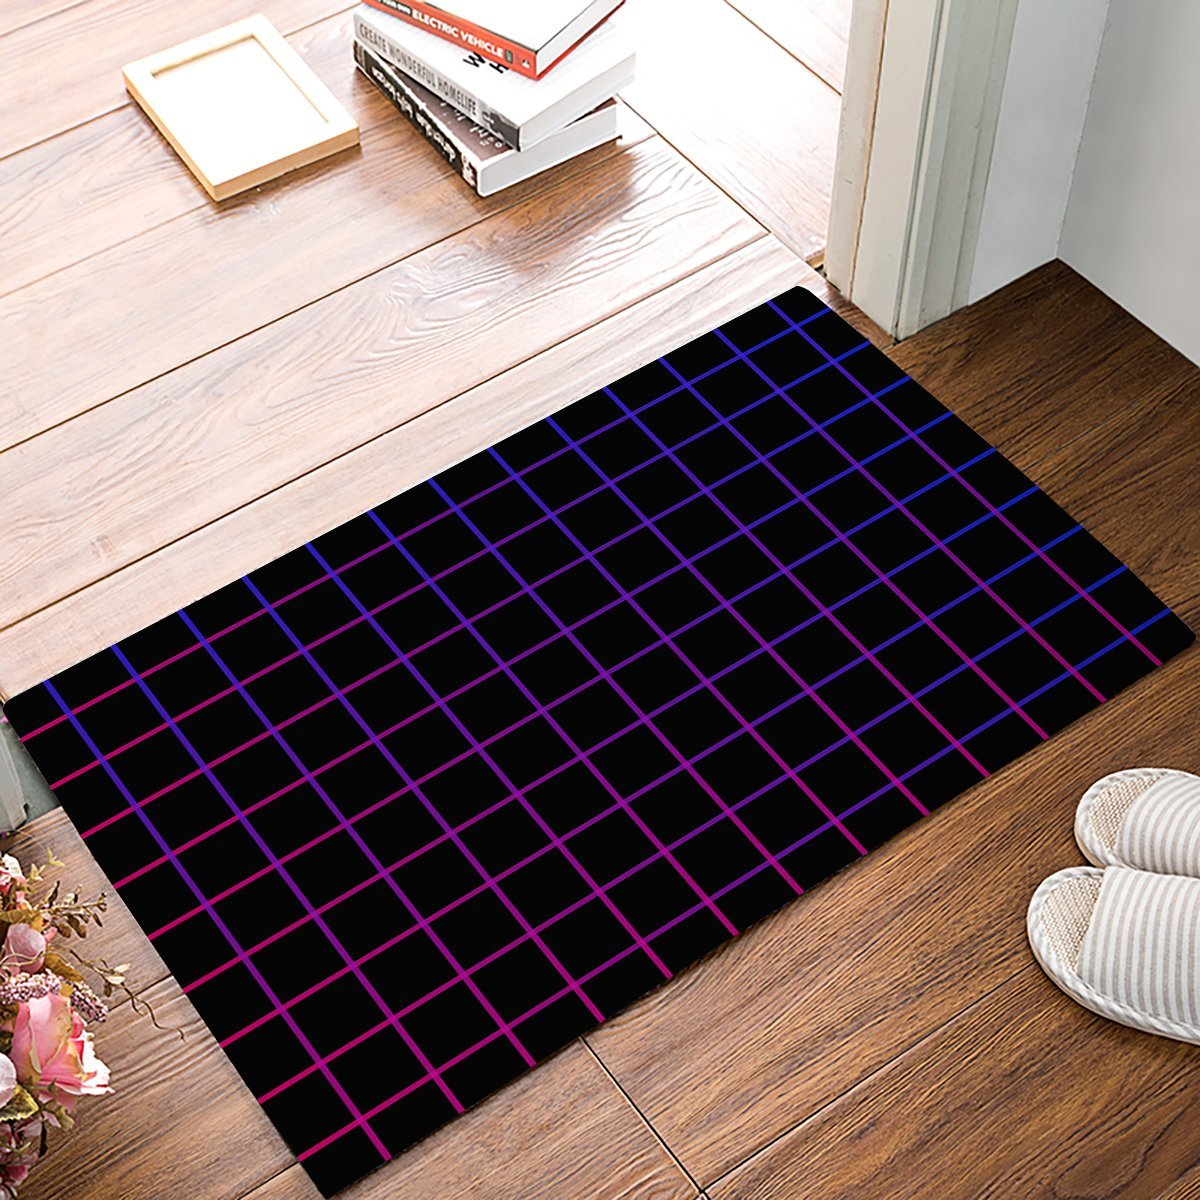 Gradient Red And Blue Neon Light Plaid Door Mats Kitchen Floor Bath Entrance Rug Mat Absorbent Indoor Bathroom Rubber Non Slip